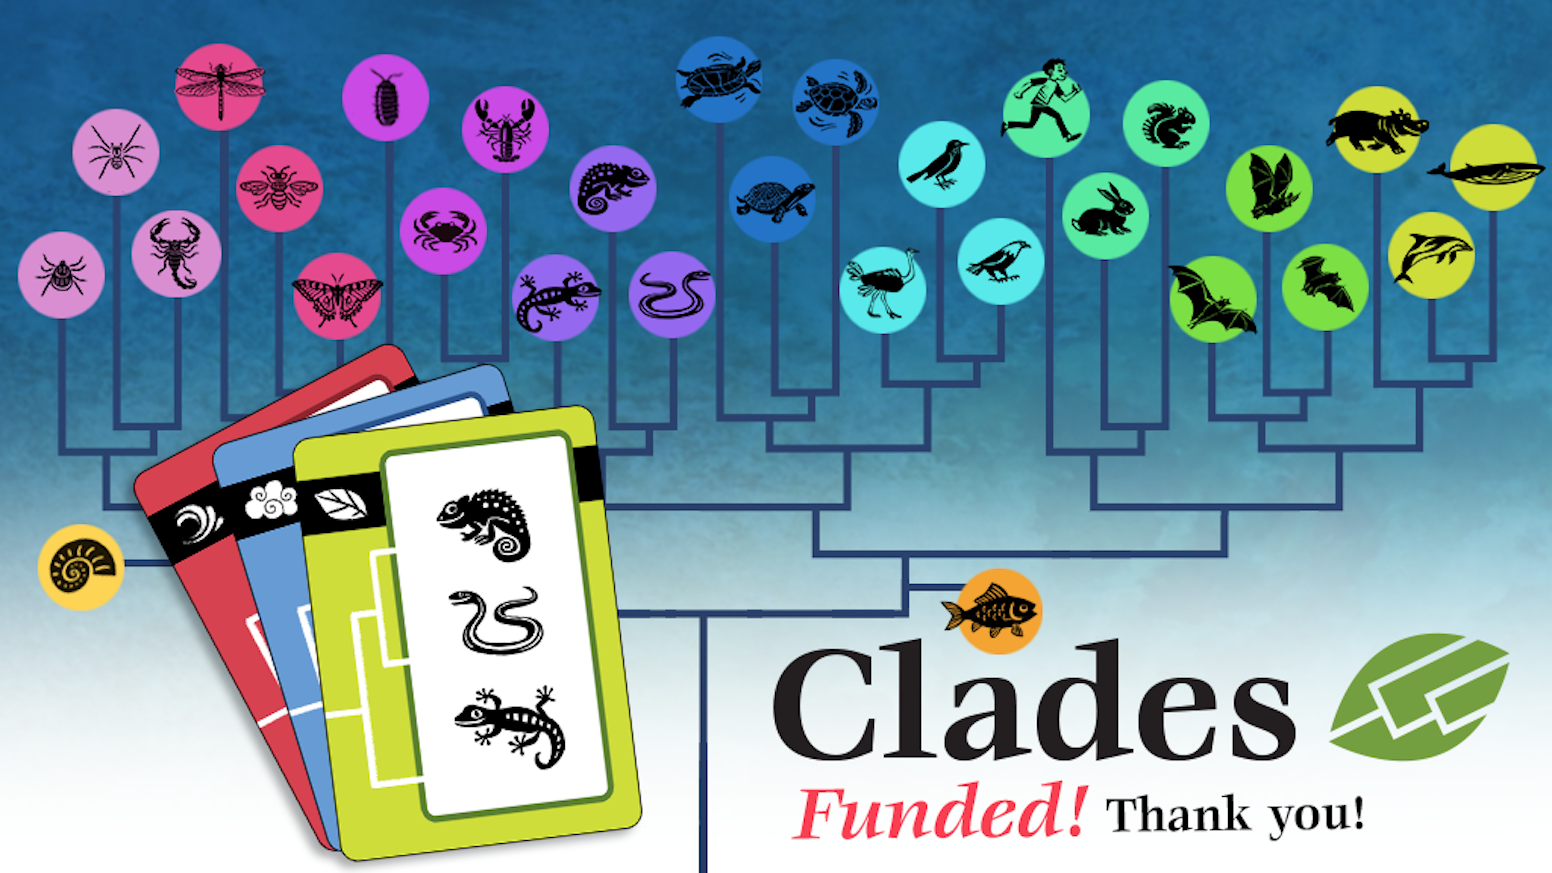 Clades & Clades: Prehistoric are animal-matching games about evolutionary descent, ages 6 to adult. Good fun and good science. Order here.